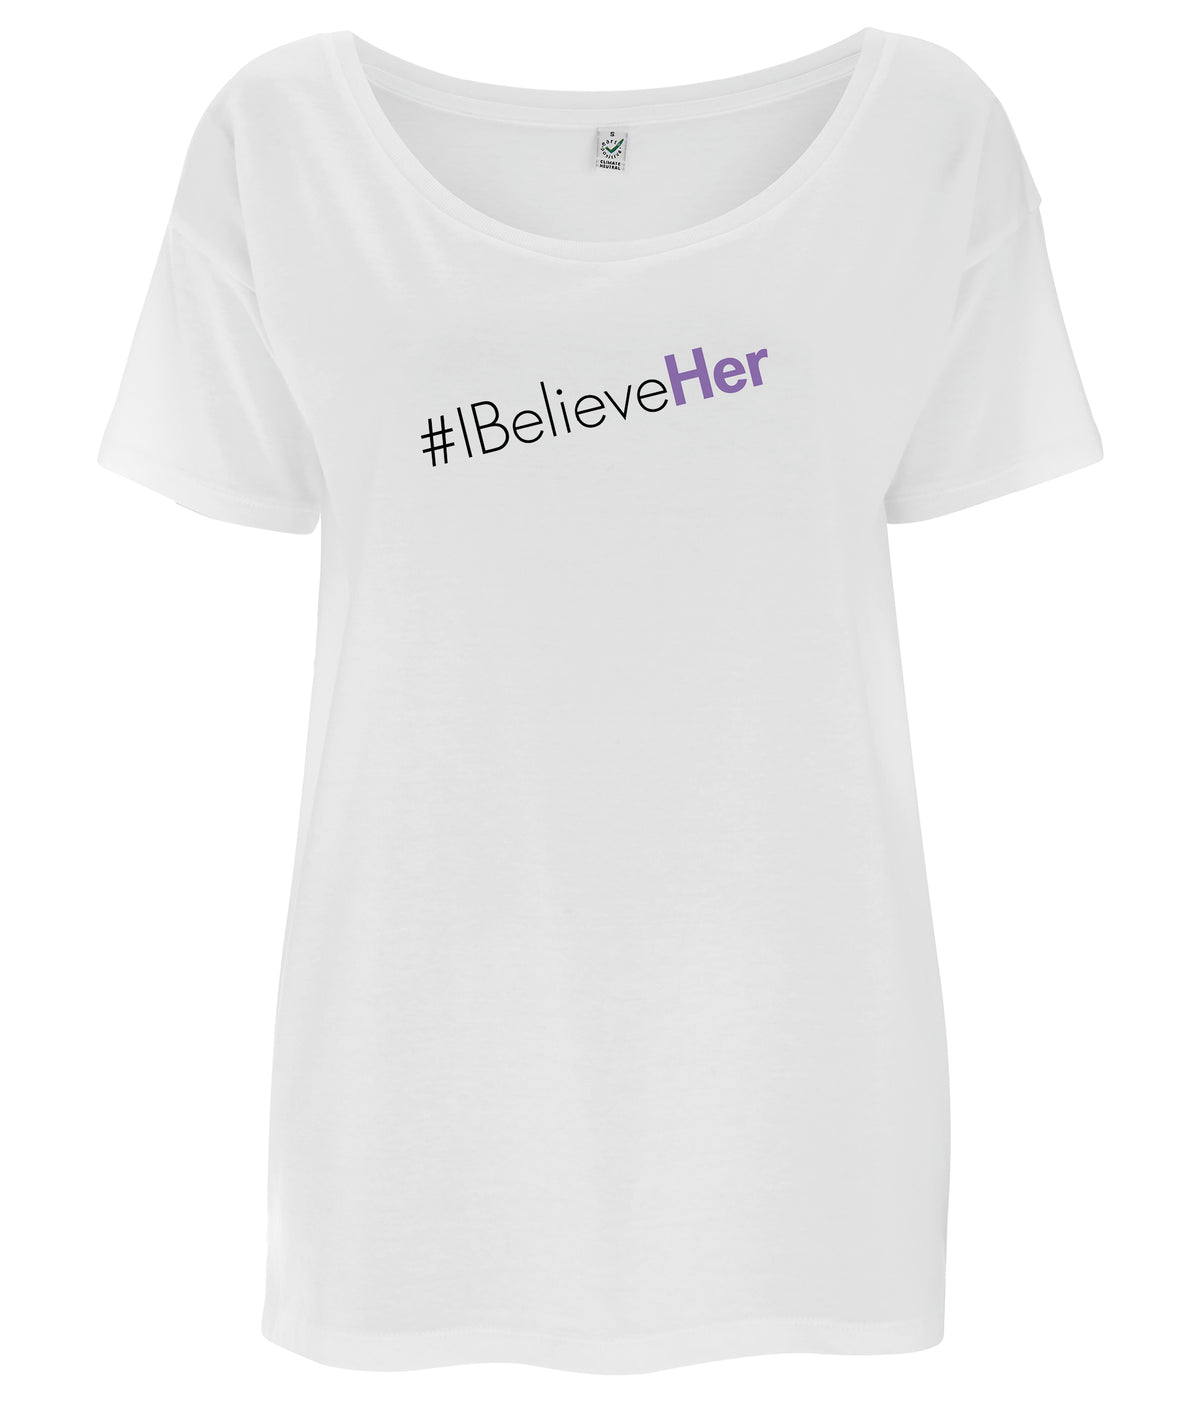 #IBelieveHer Tencel Blend Oversized Feminist T Shirt White